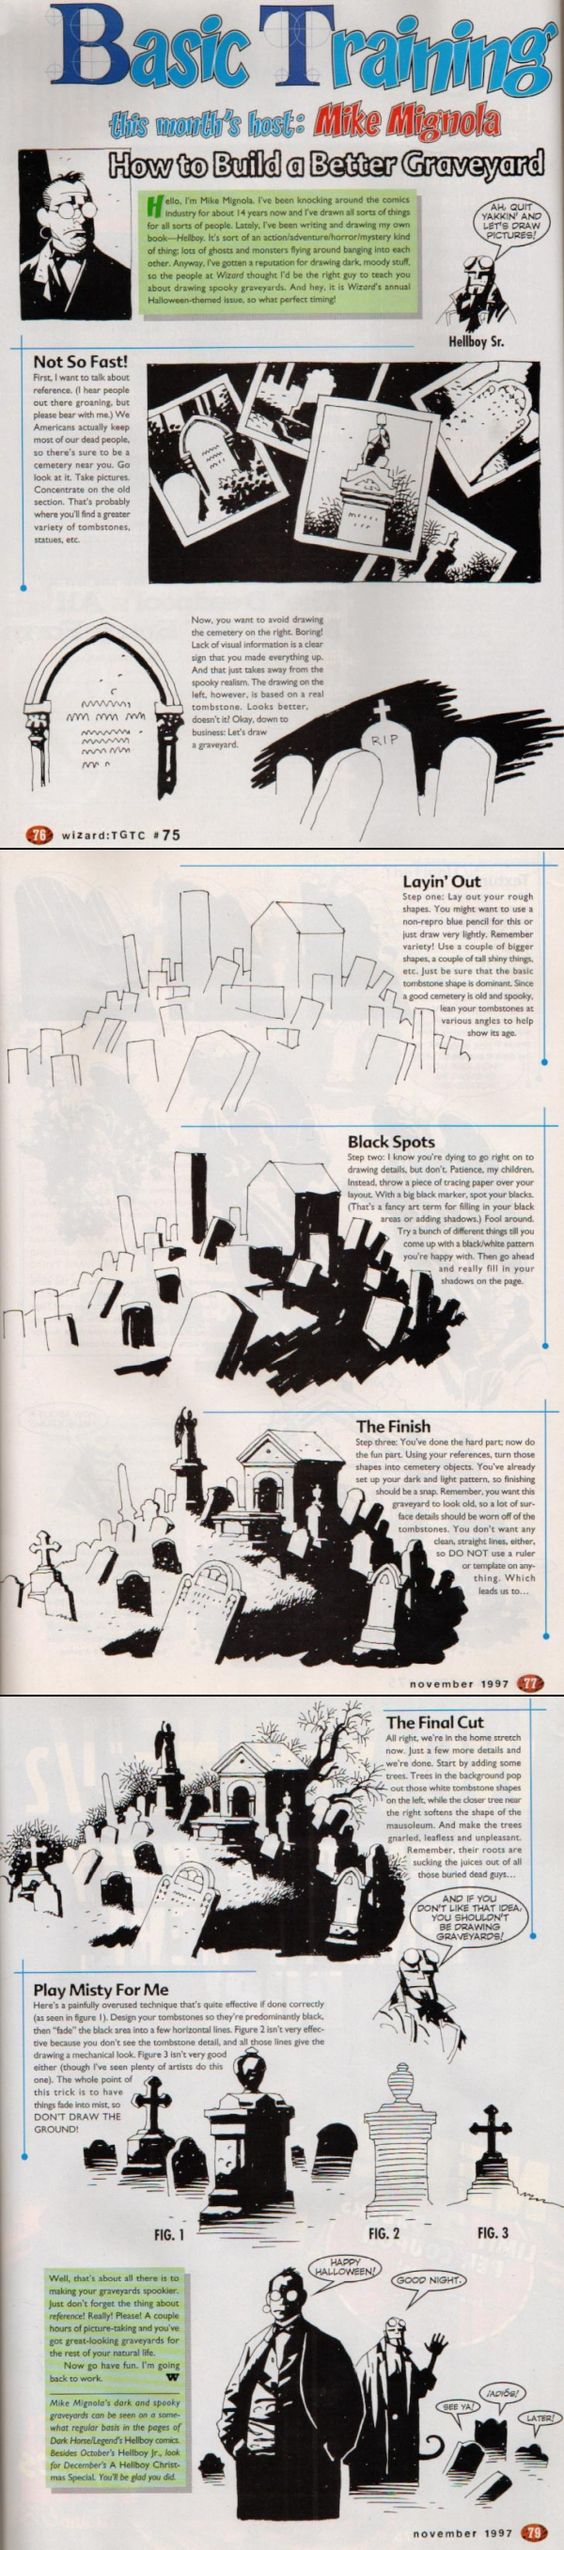 How to Build a Better Graveyard, by Mike Mignola